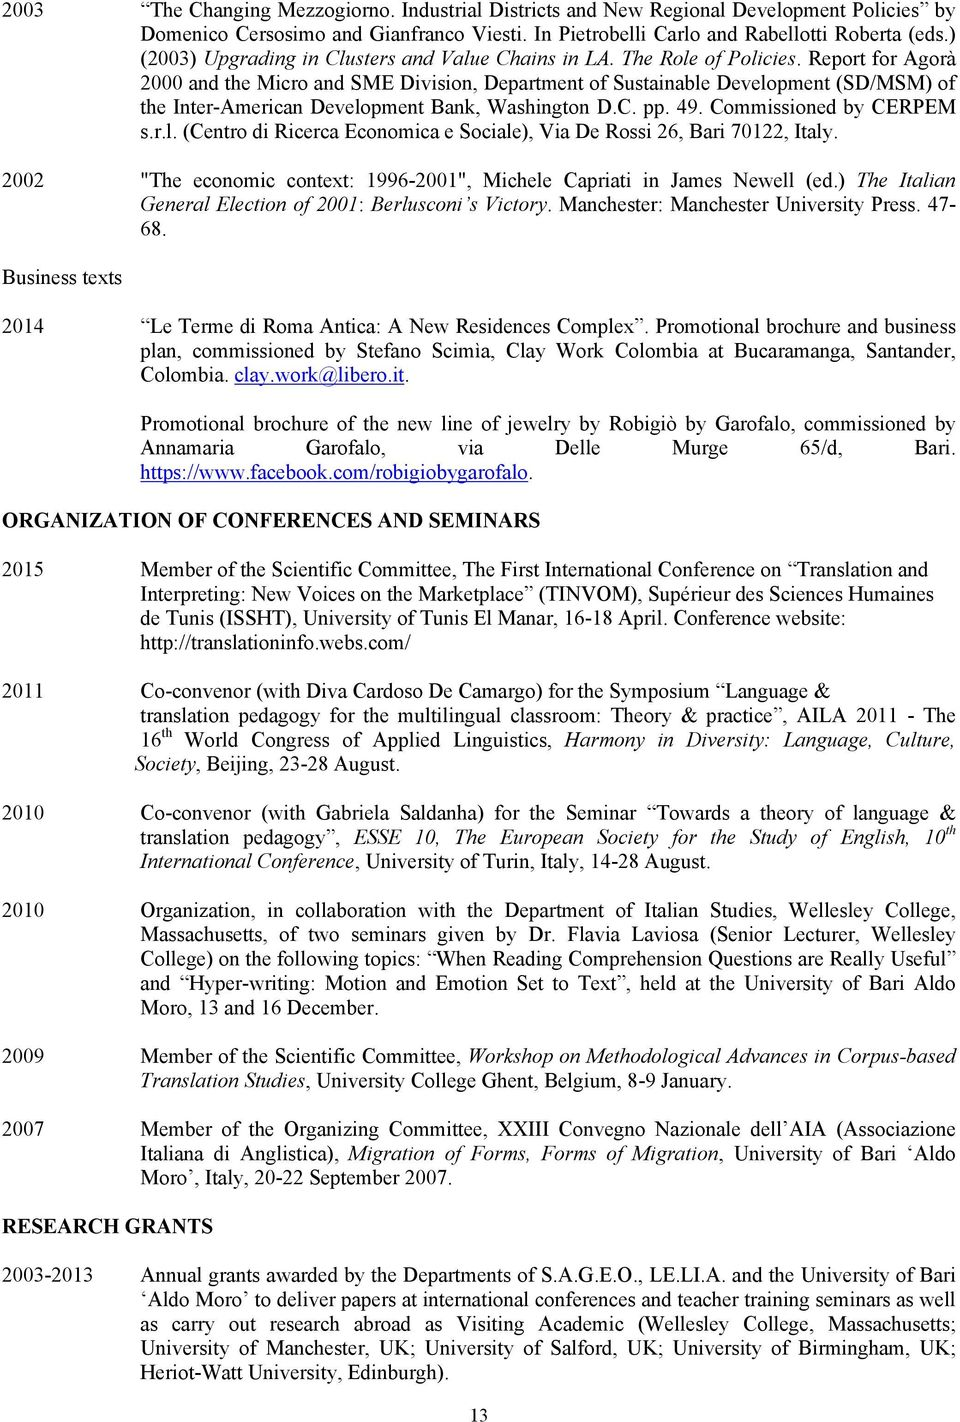 Curriculum vitae sara laviosa formerly laviosa braithwaite pdf report for agor 2000 and the micro and sme division department of sustainable development fandeluxe Images